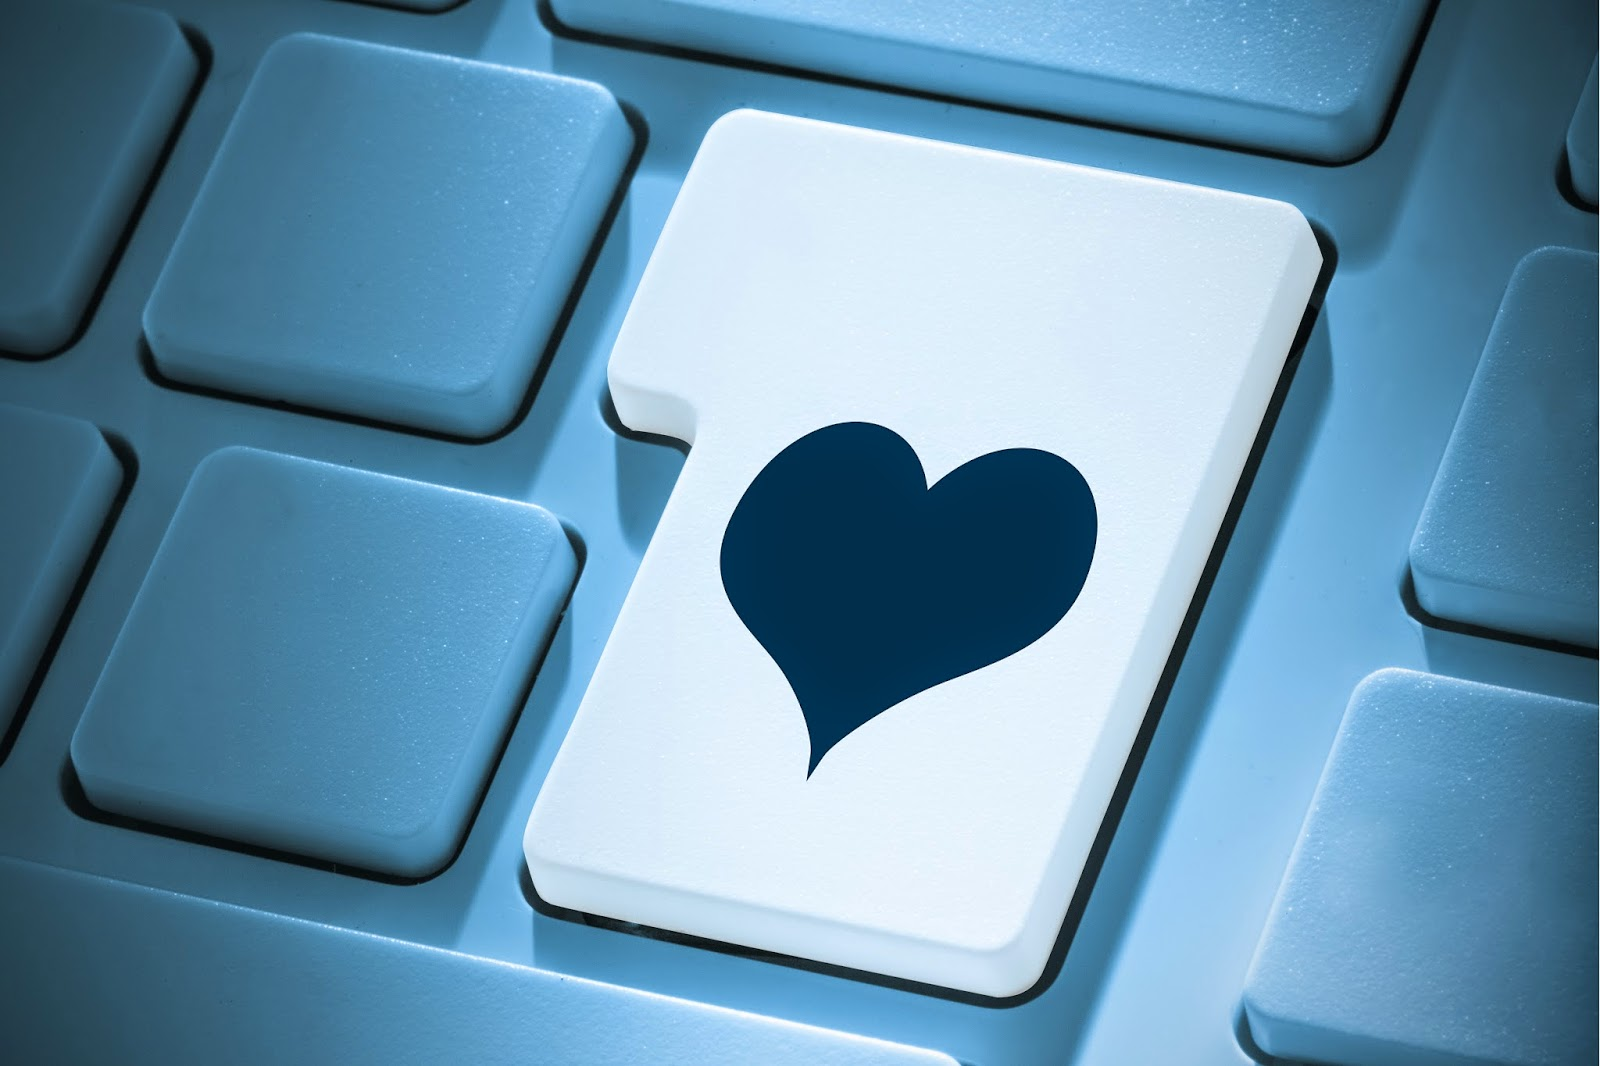 Heart on enter key